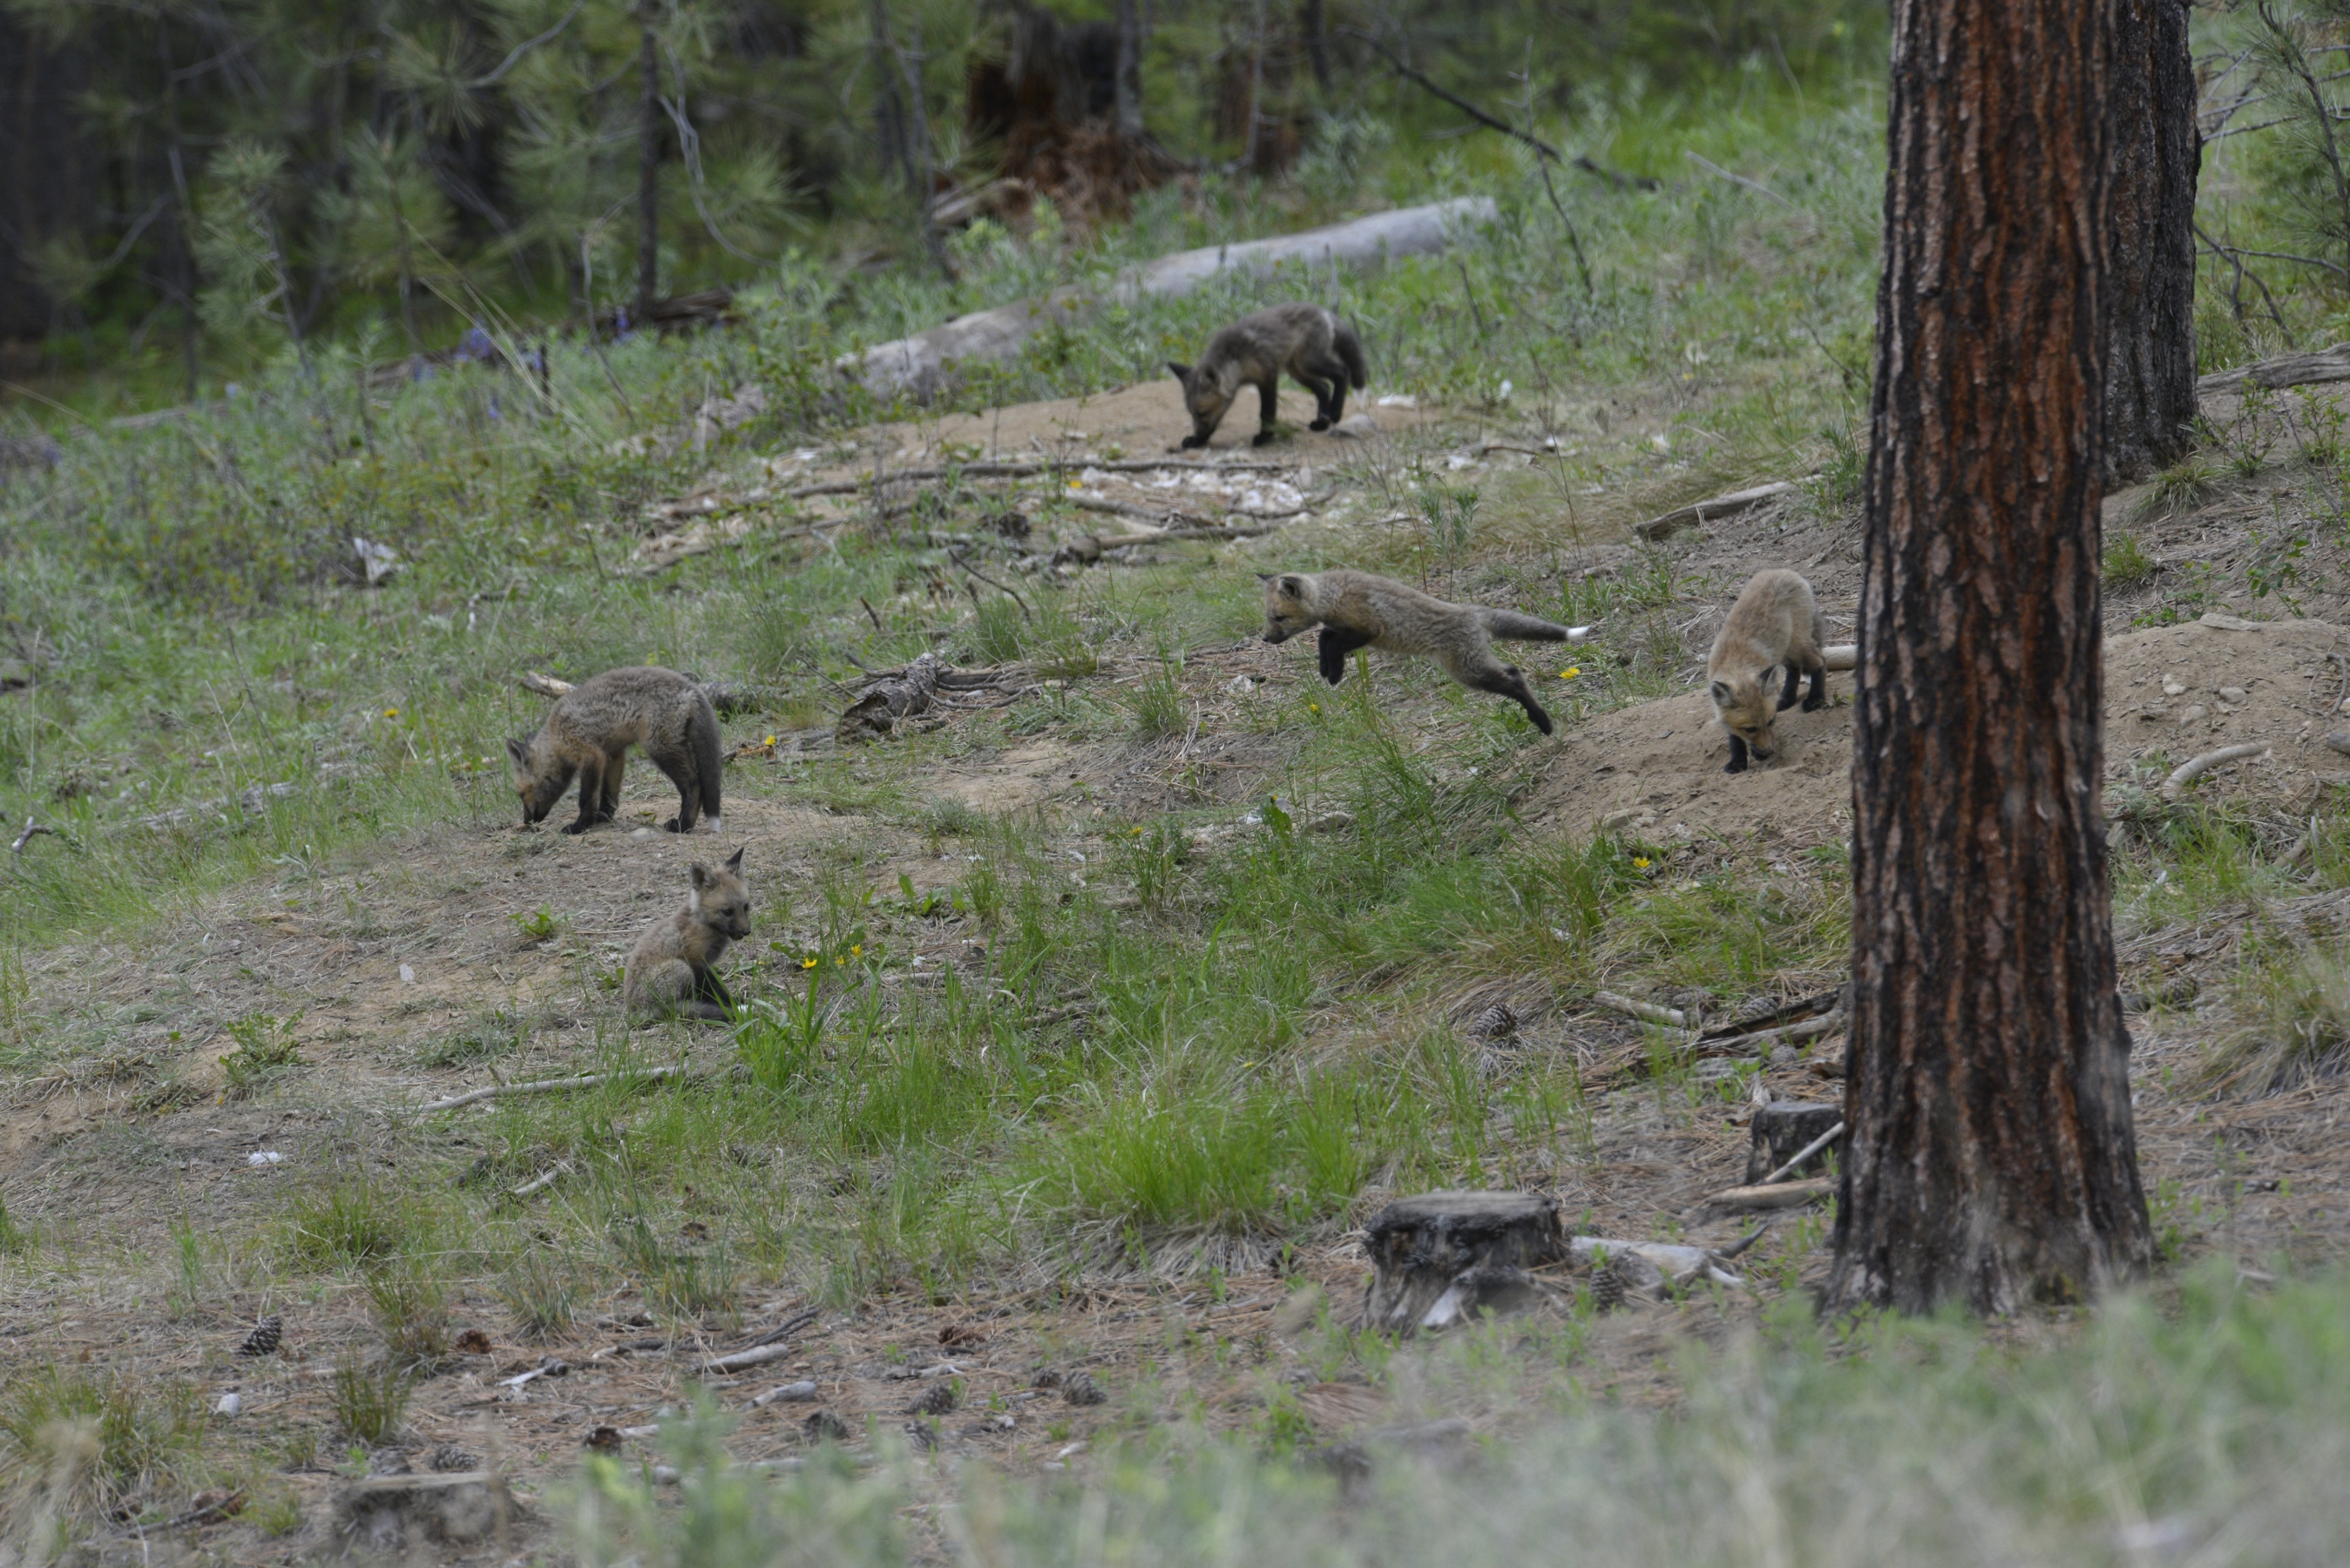 Five fox kits outside a den - one is leaping toward another - lookout!